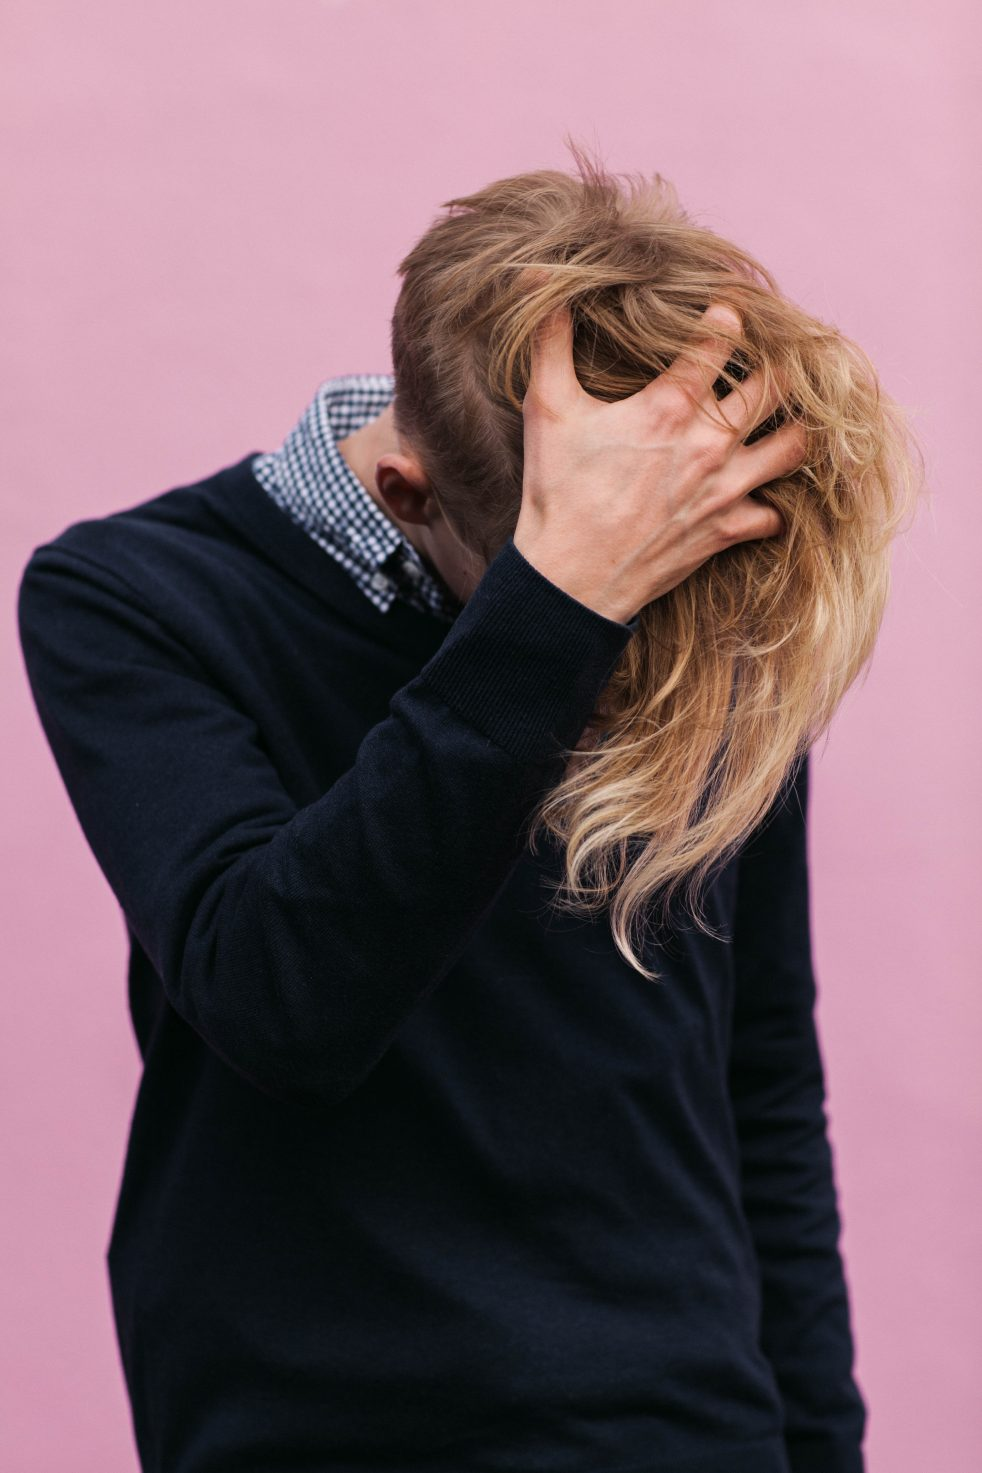 Image is a person with blonde hair, looking at the ground, their hand in their hair, wearing a dark blue sweater and light blue button shirt under it, against a dusty pink background.